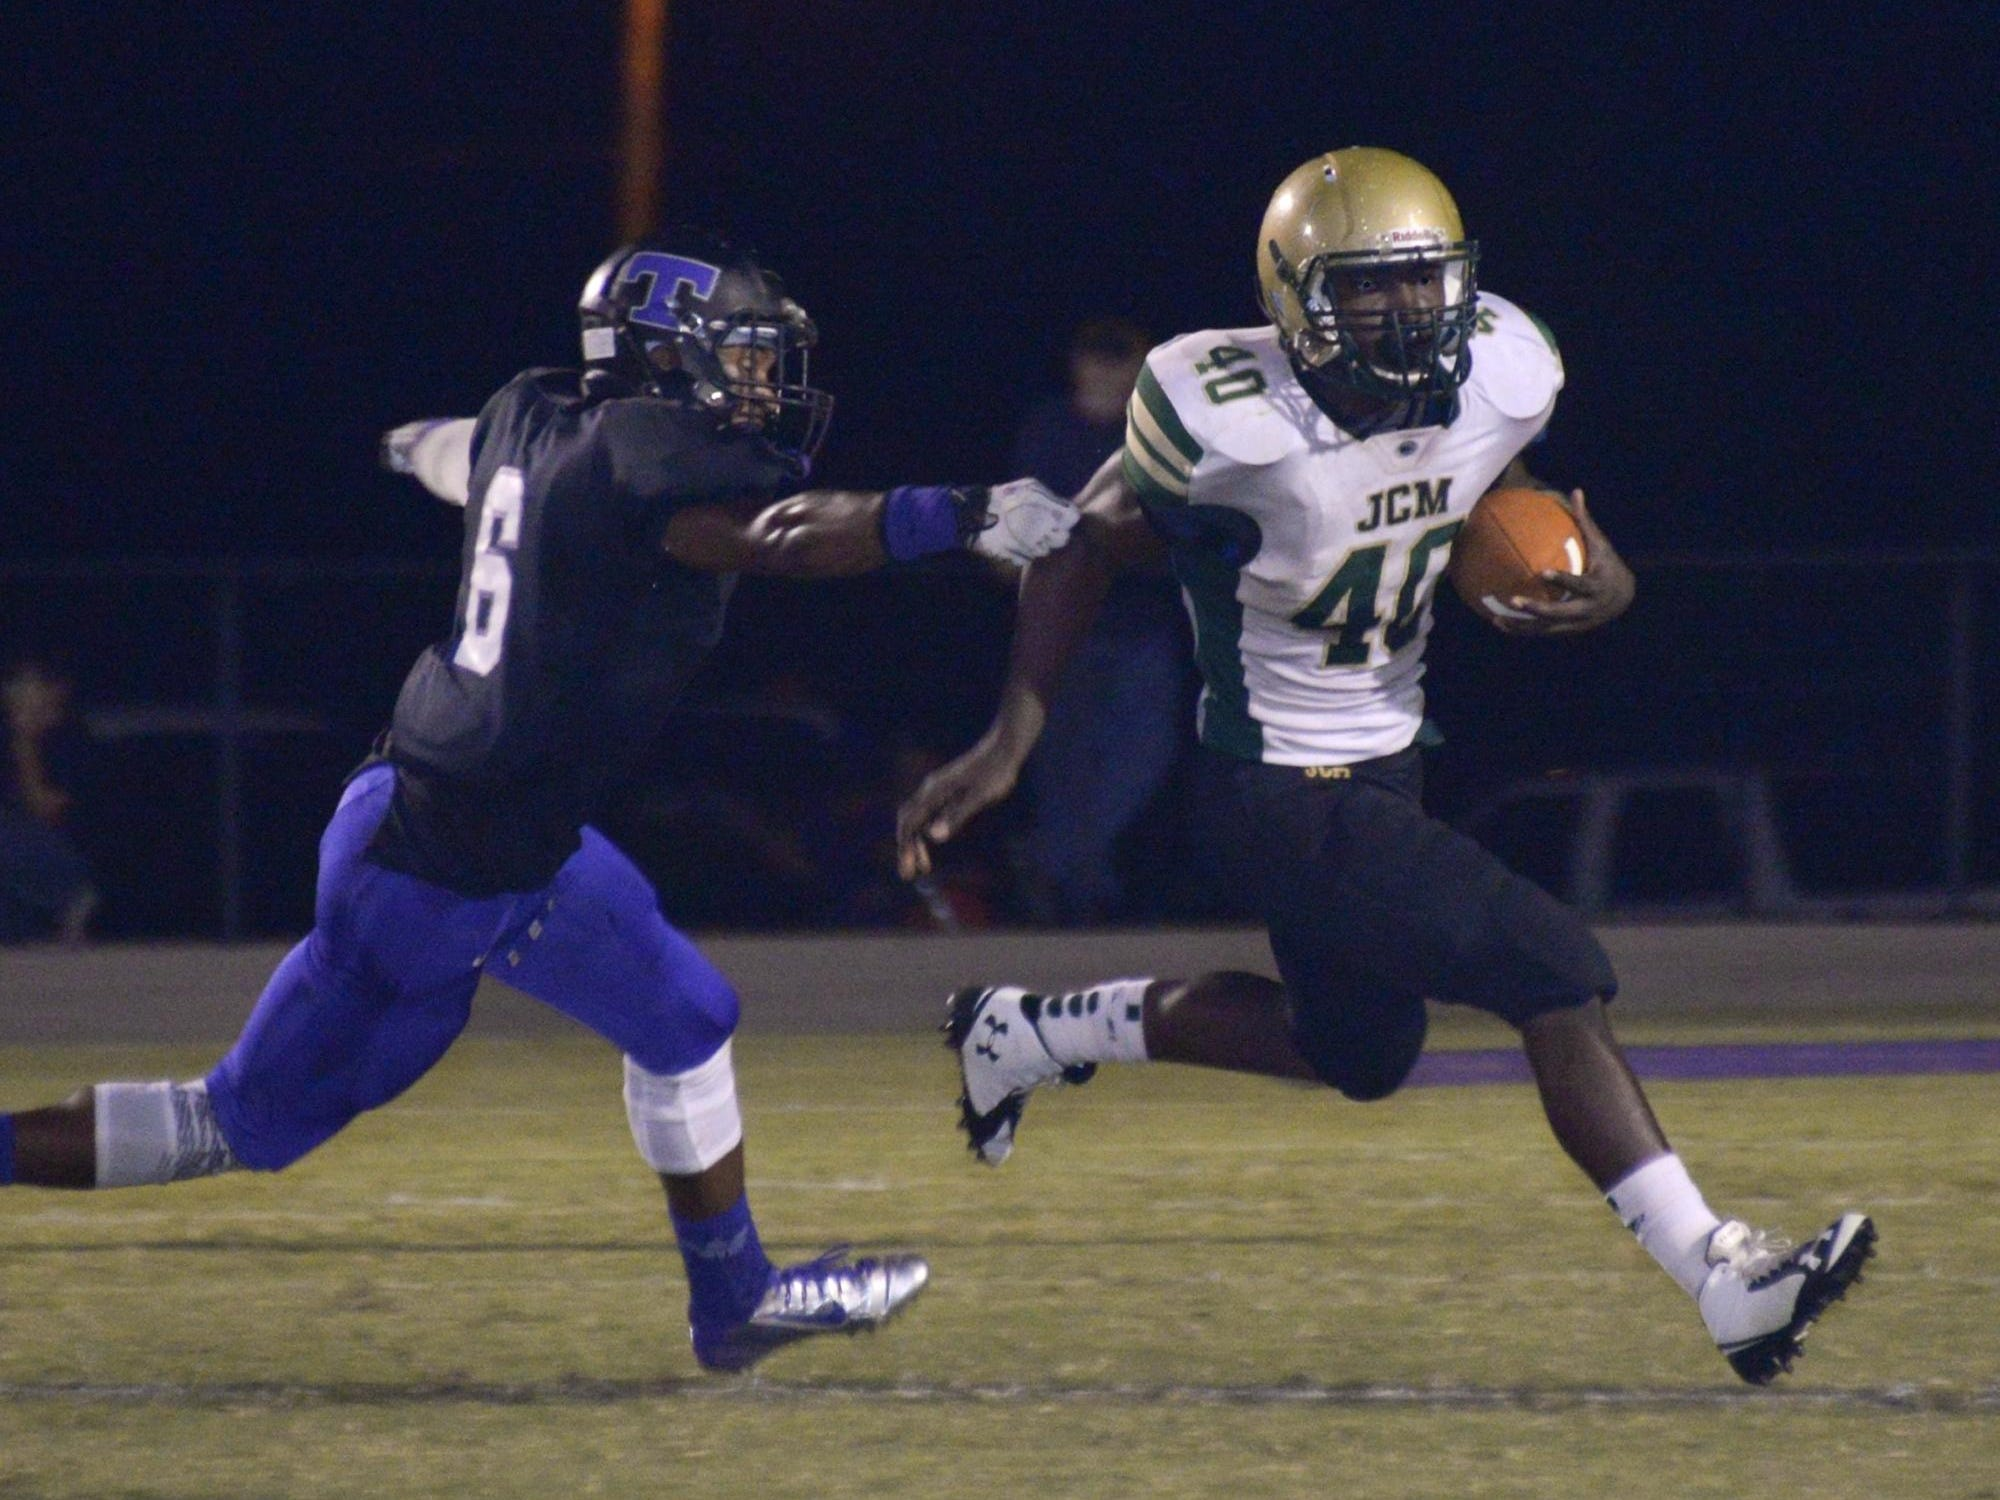 JCM running back Trayvone French gets away from a defender in a loss to TCA last year.